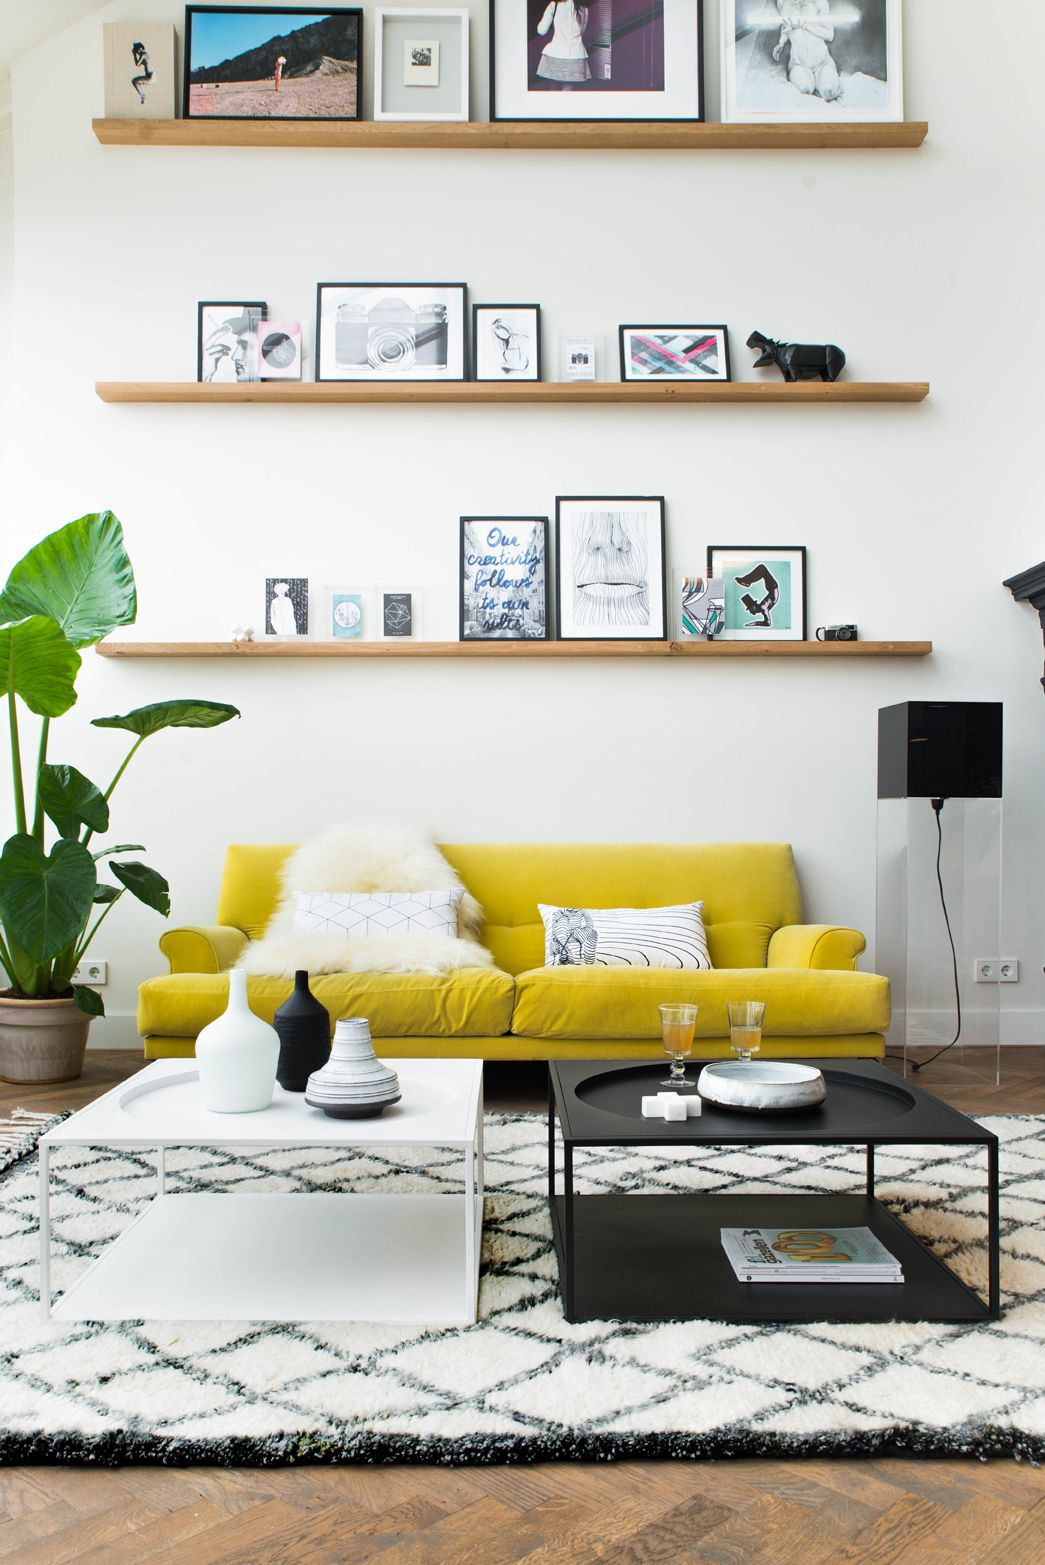 HKliving catalogue summer edition 2015 yellow couch berber rug ...